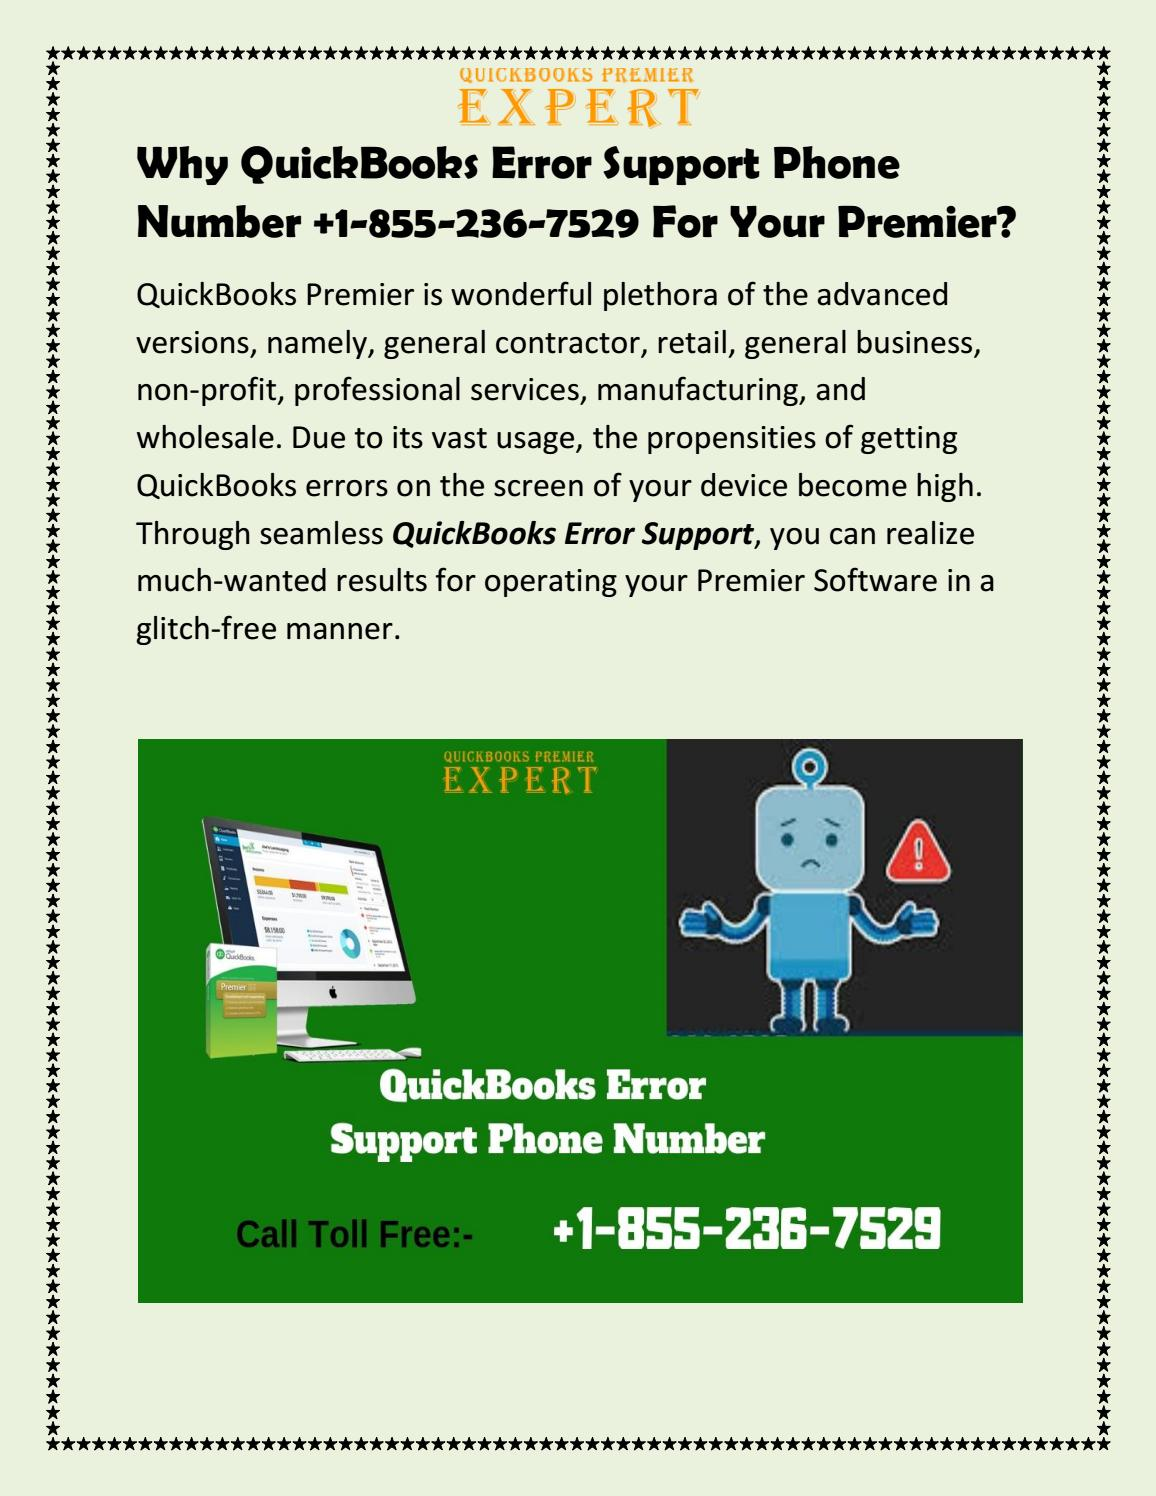 Why QuickBooks Error Support Phone Number 8552367529 For Your Premier?